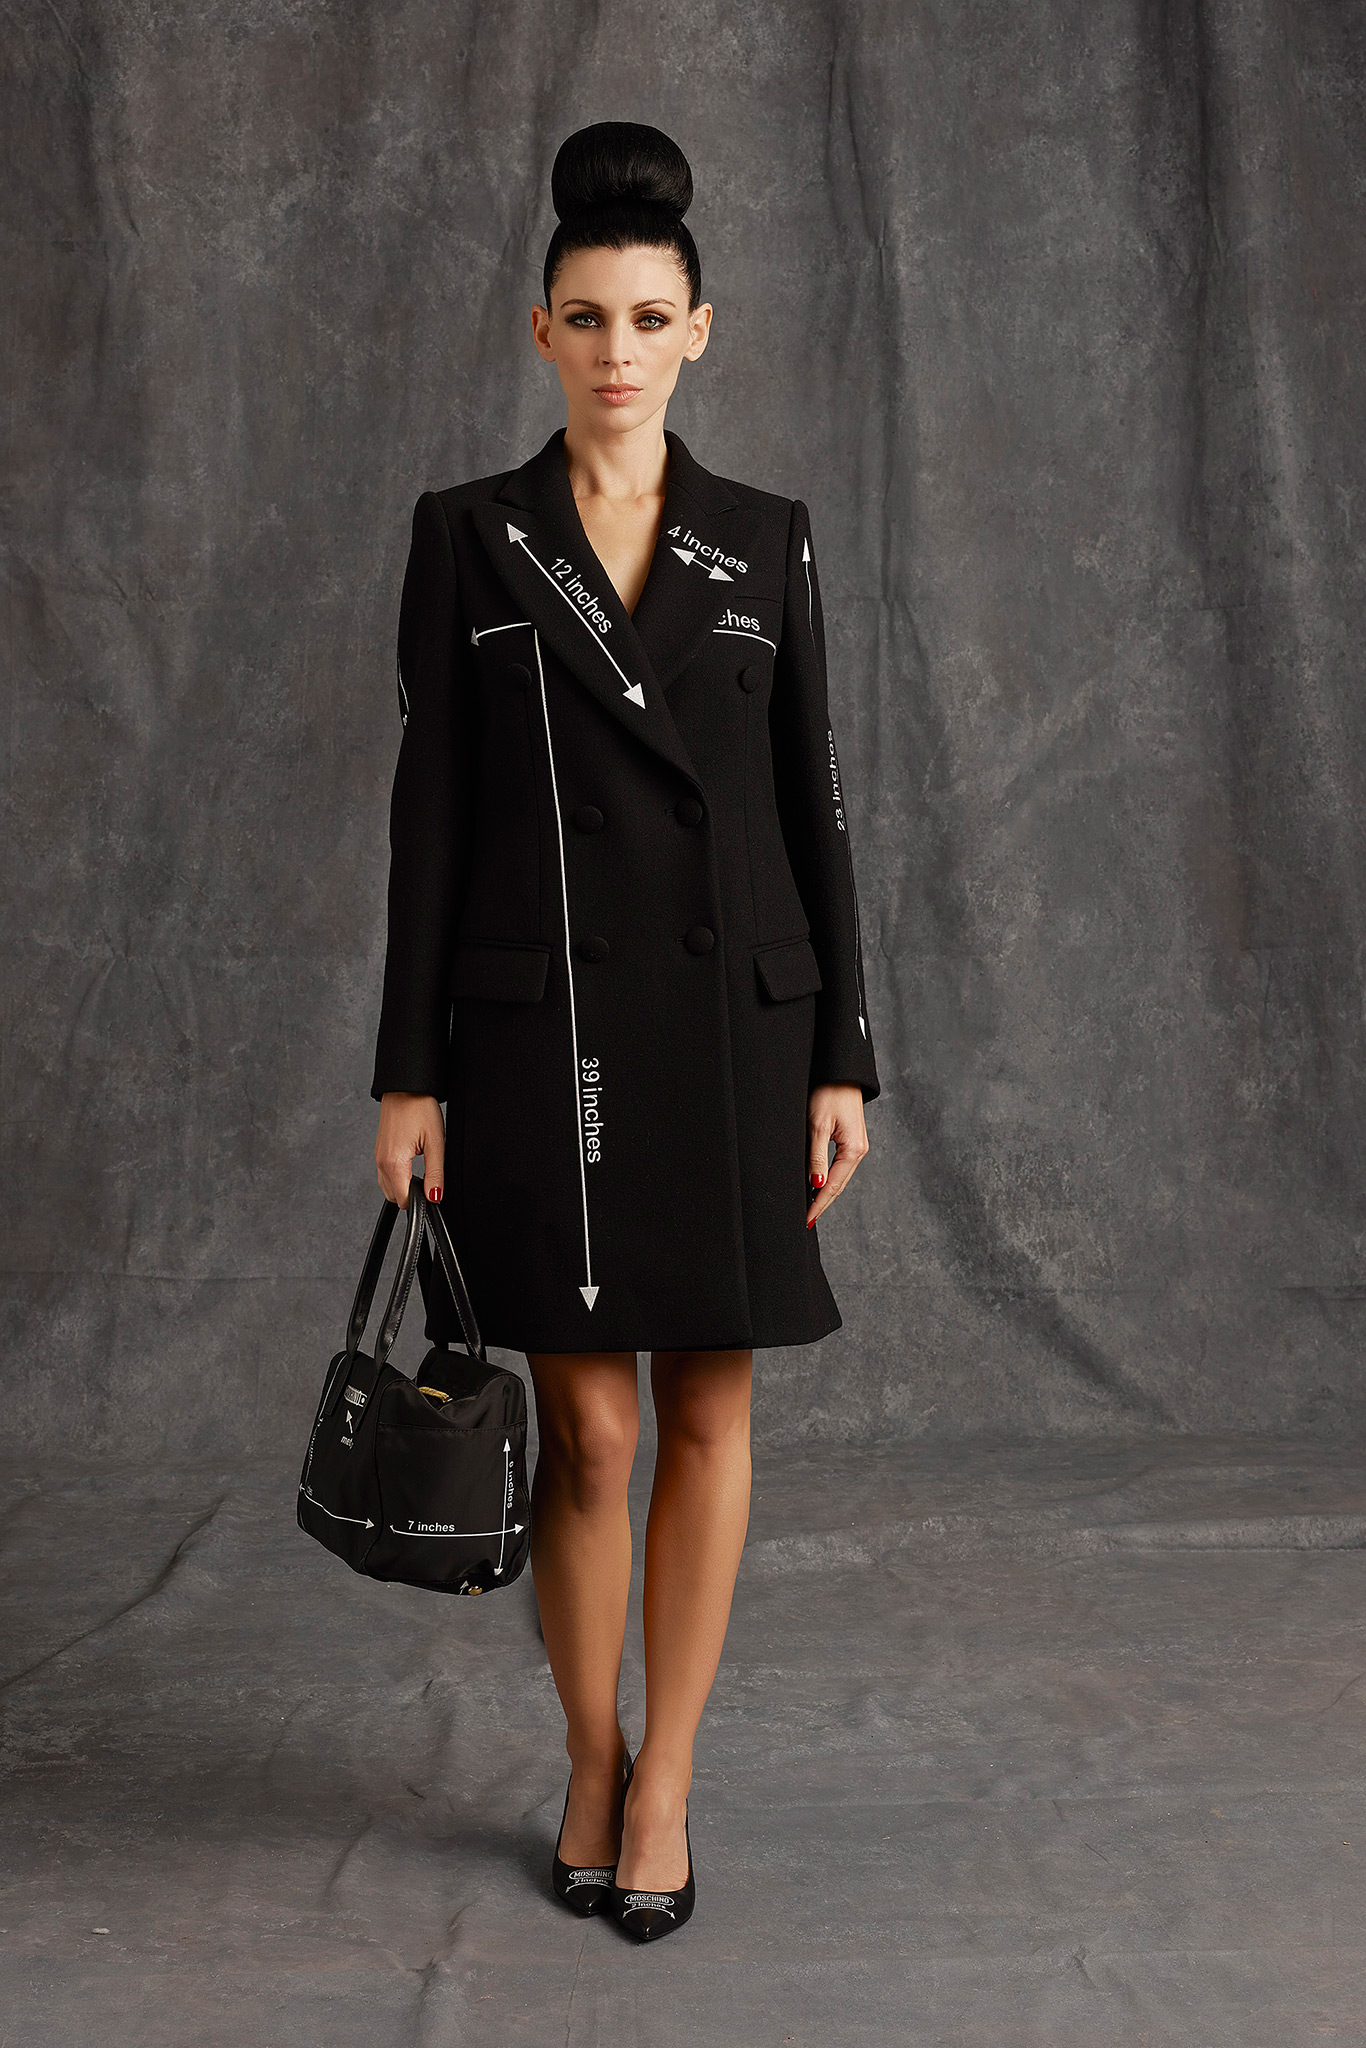 Moschino pre-fall 2015 we fashion trends por deisi remus